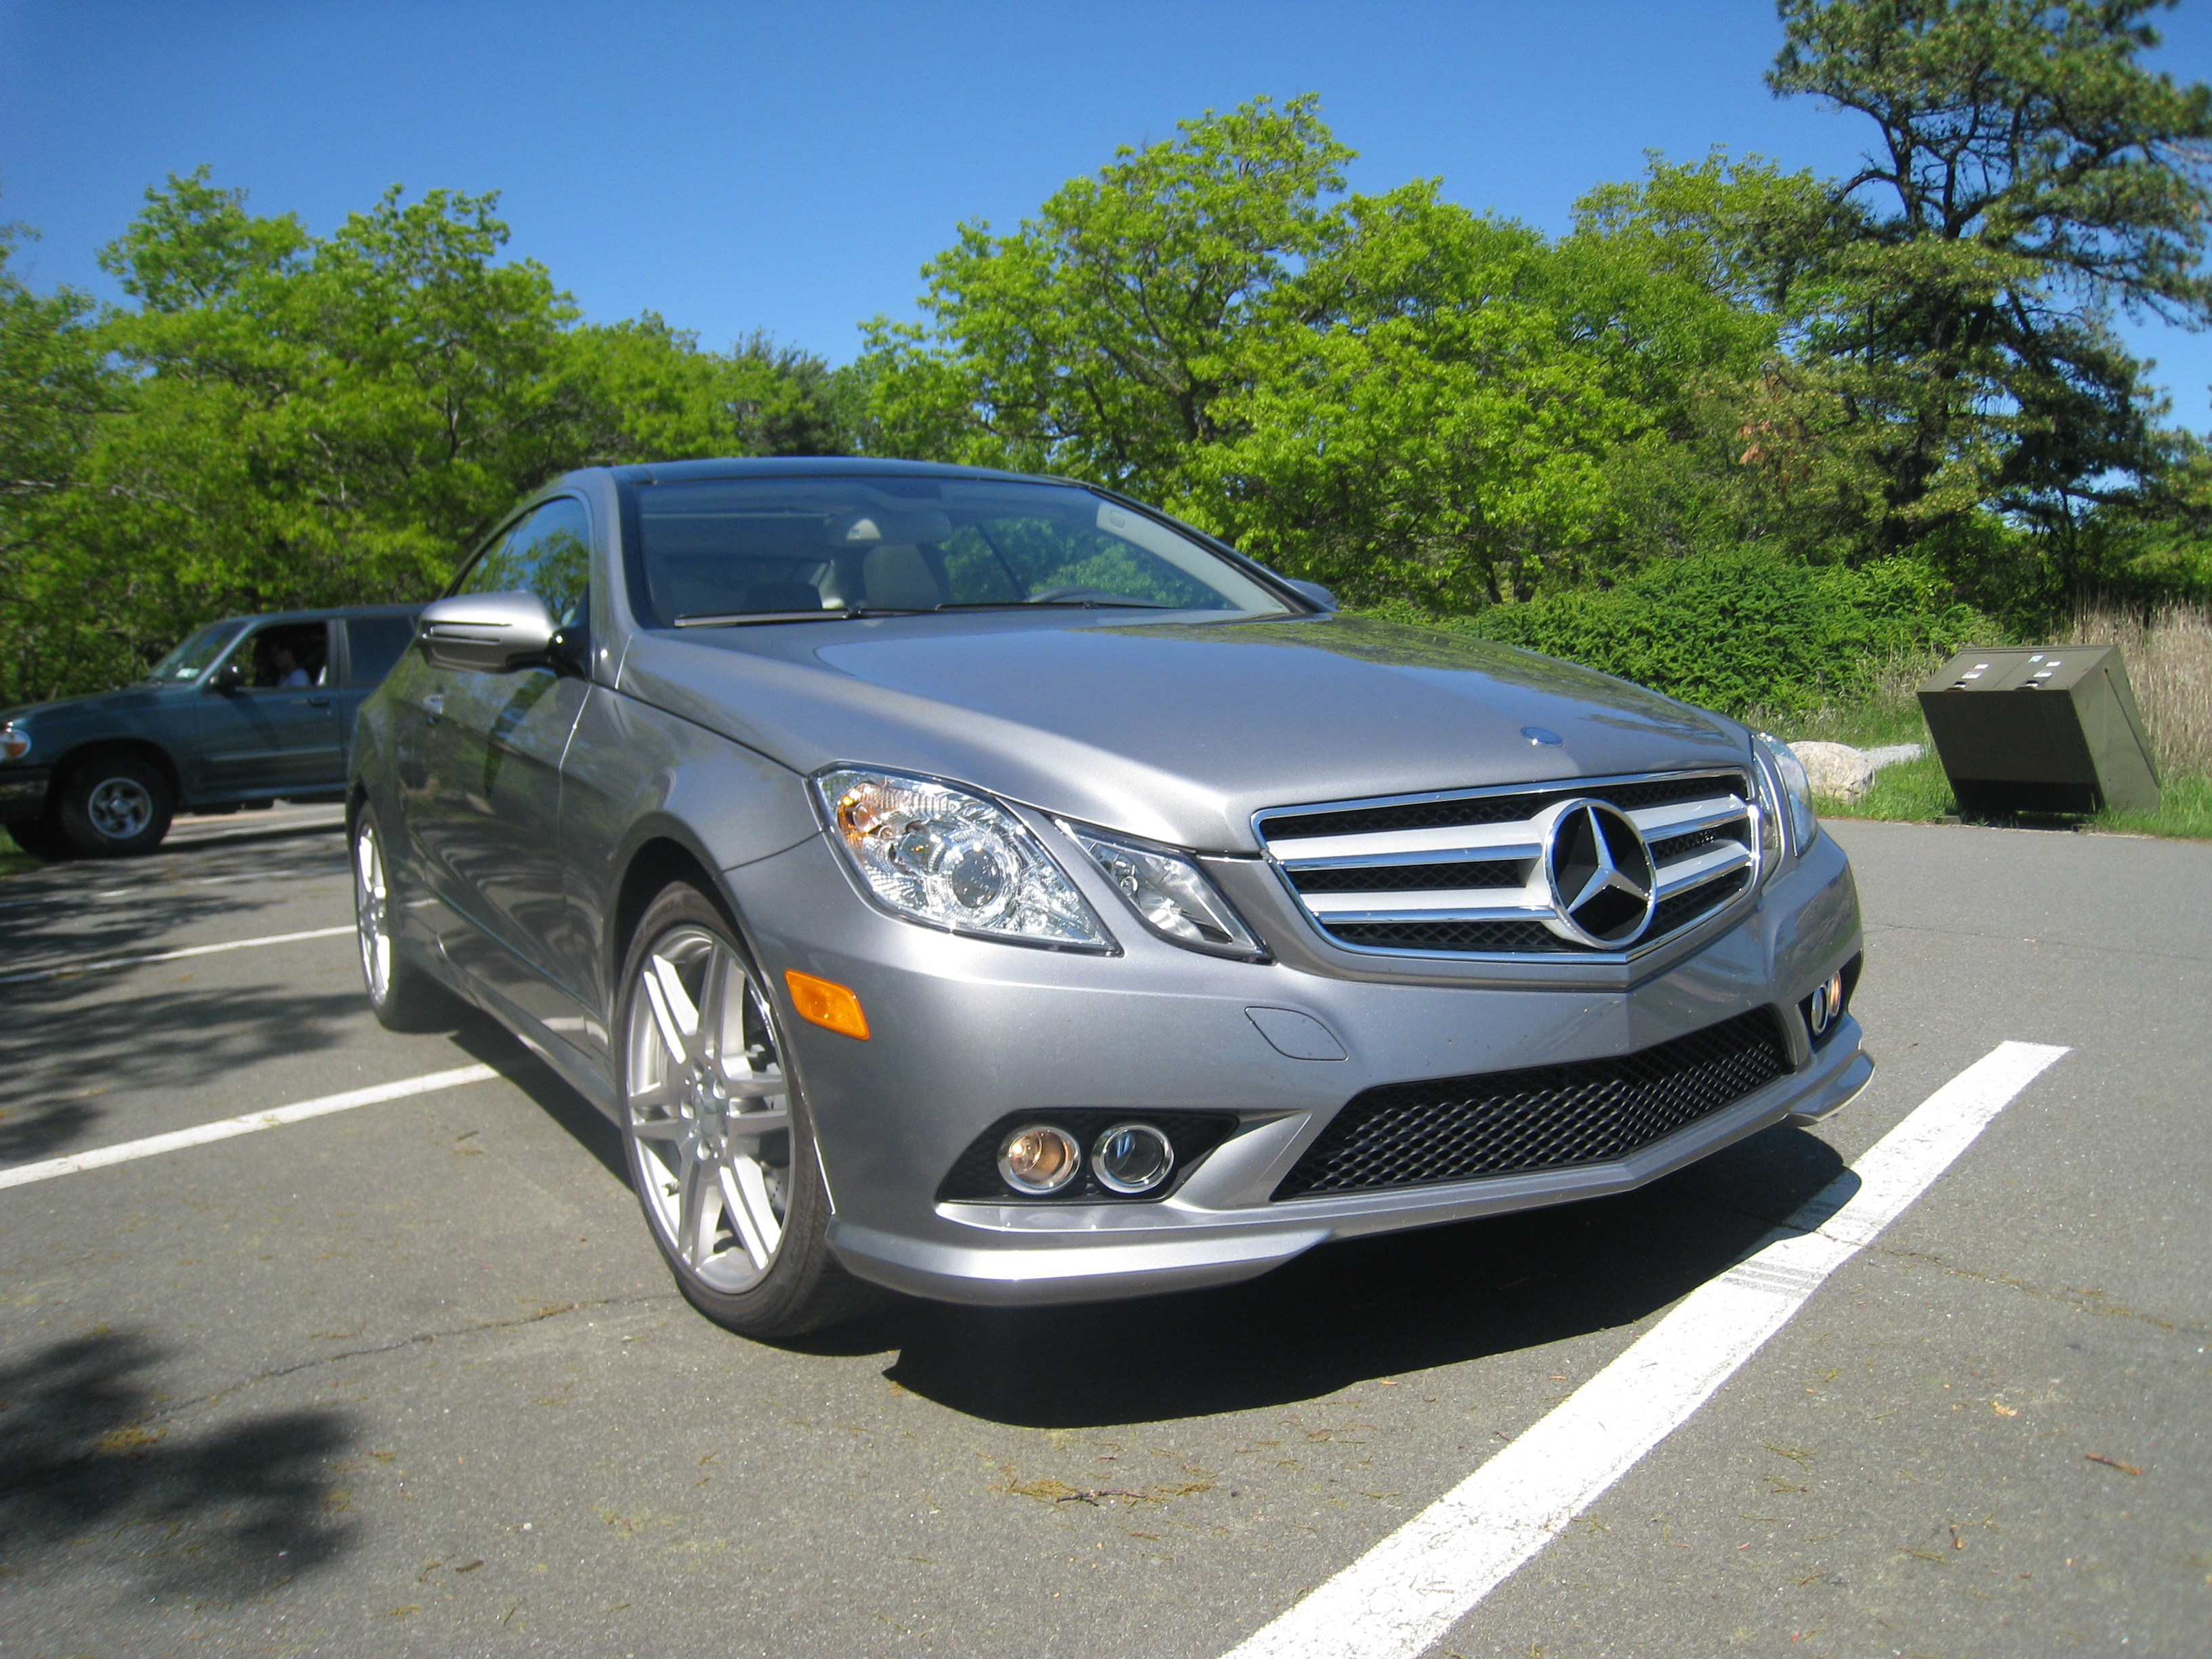 benz auctions at class vicari of house biloxi for auction a sale image e mercedes